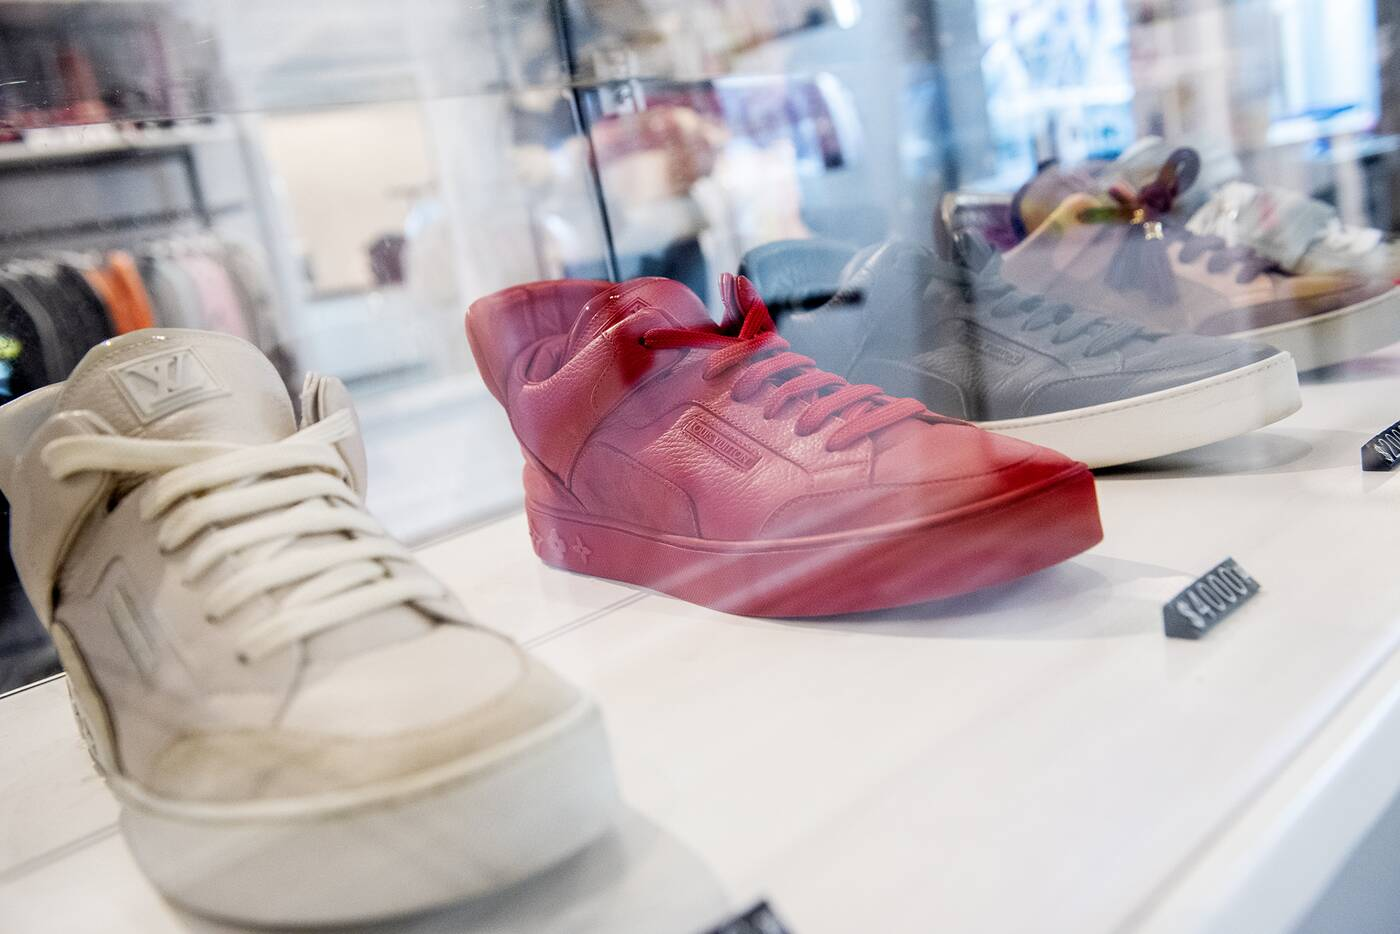 7860d4f220e Not so cheap: glass displays dedicated to Kanye West's shoe designs  including some from his original Louis Vuitton collaboration released in  2009.